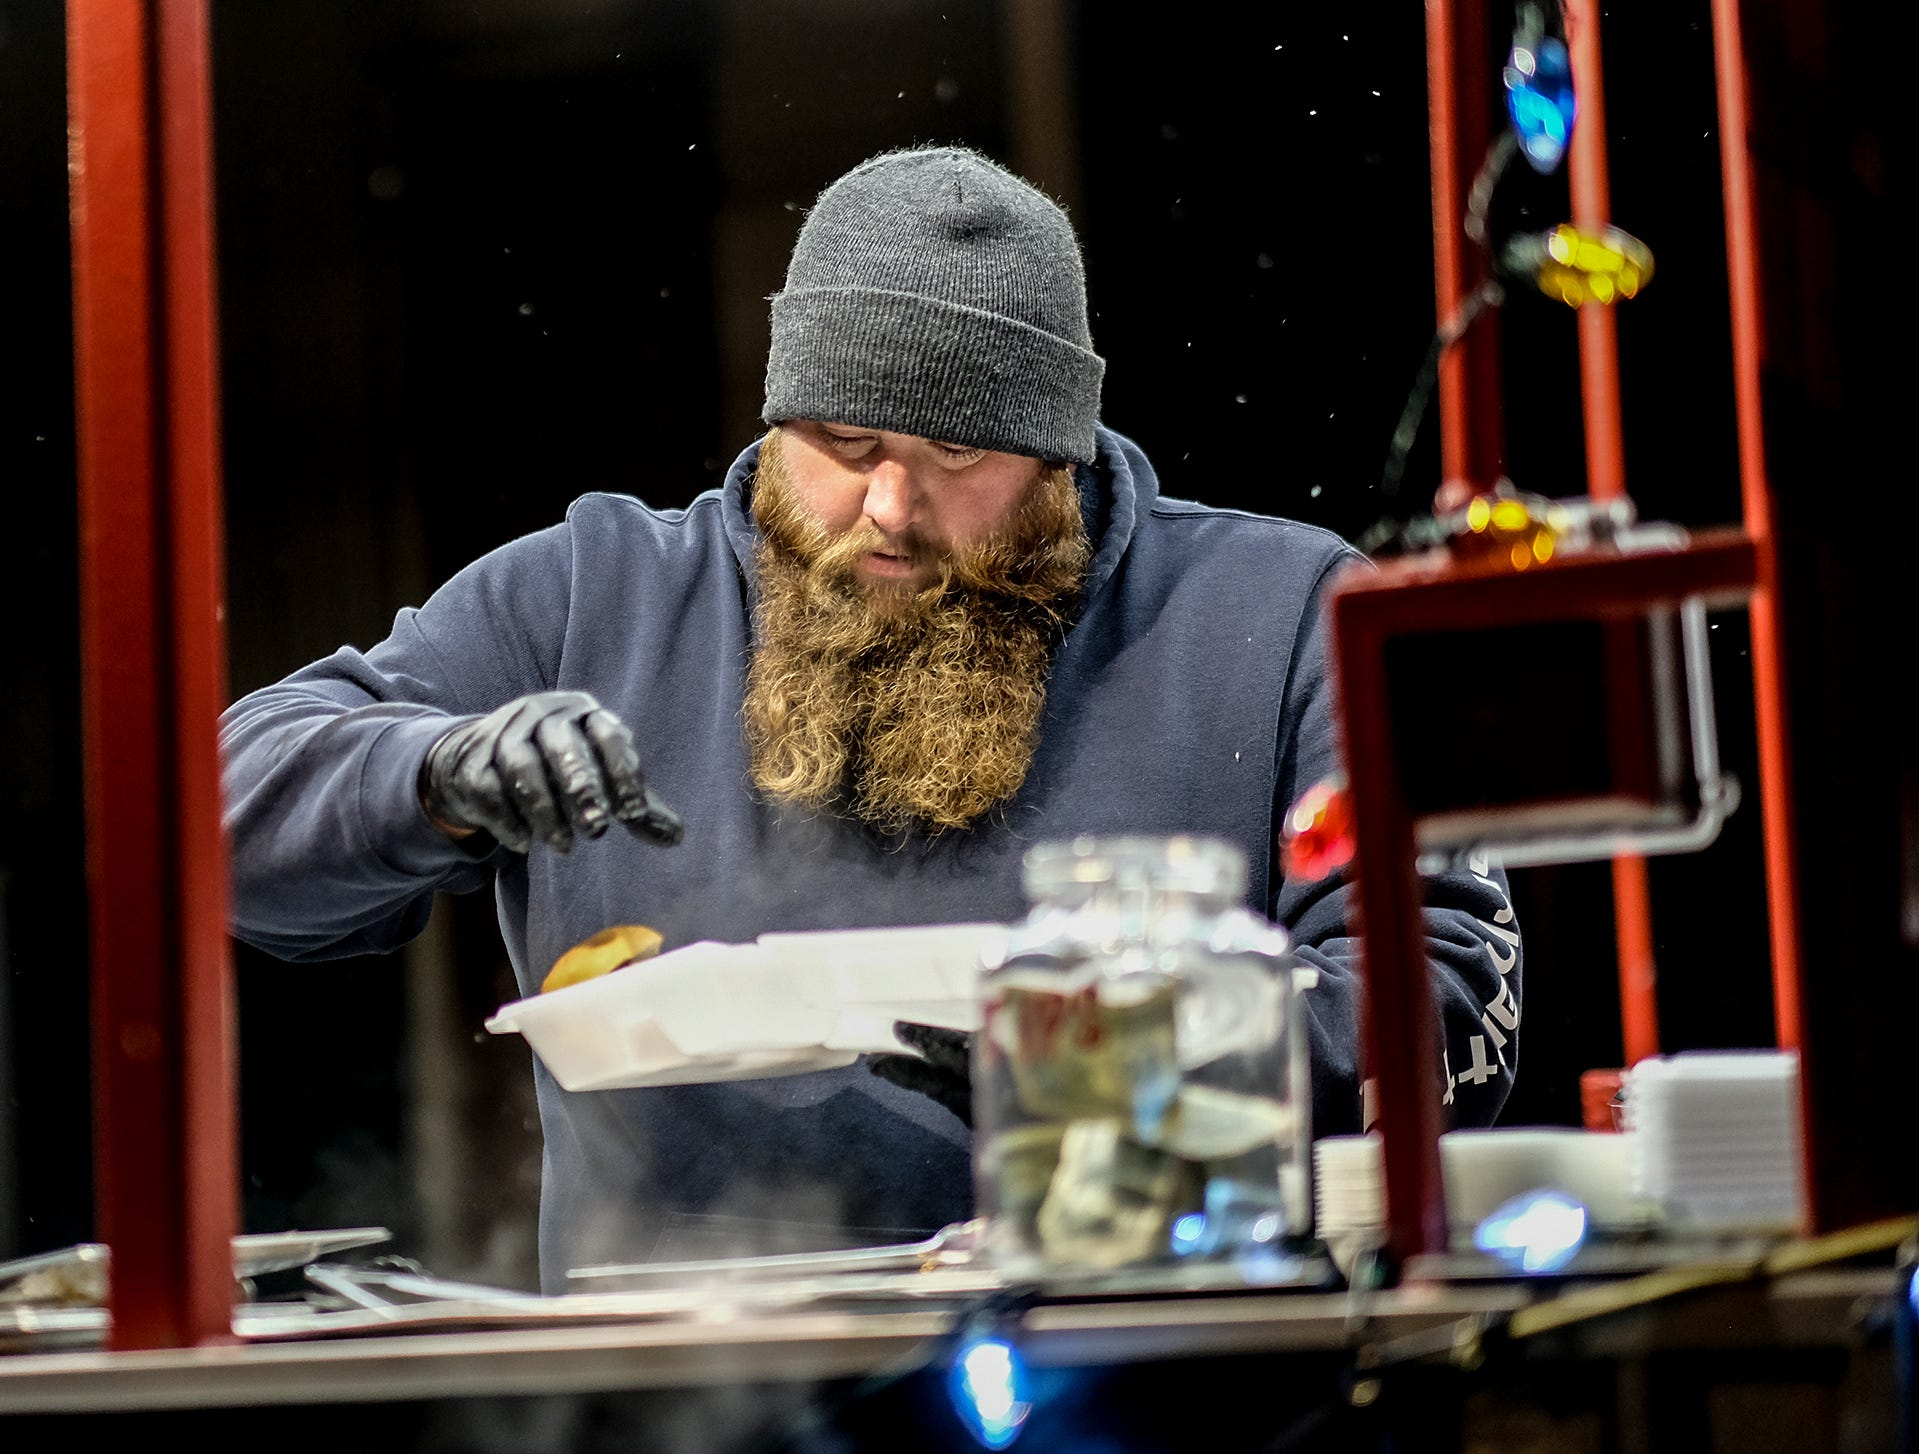 Dave Arnold from Clyde's Pit serves up some food at the Annual Festival of Lights and Santa Parade in downtown St. Johns Friday, Dec, 7, 2018.